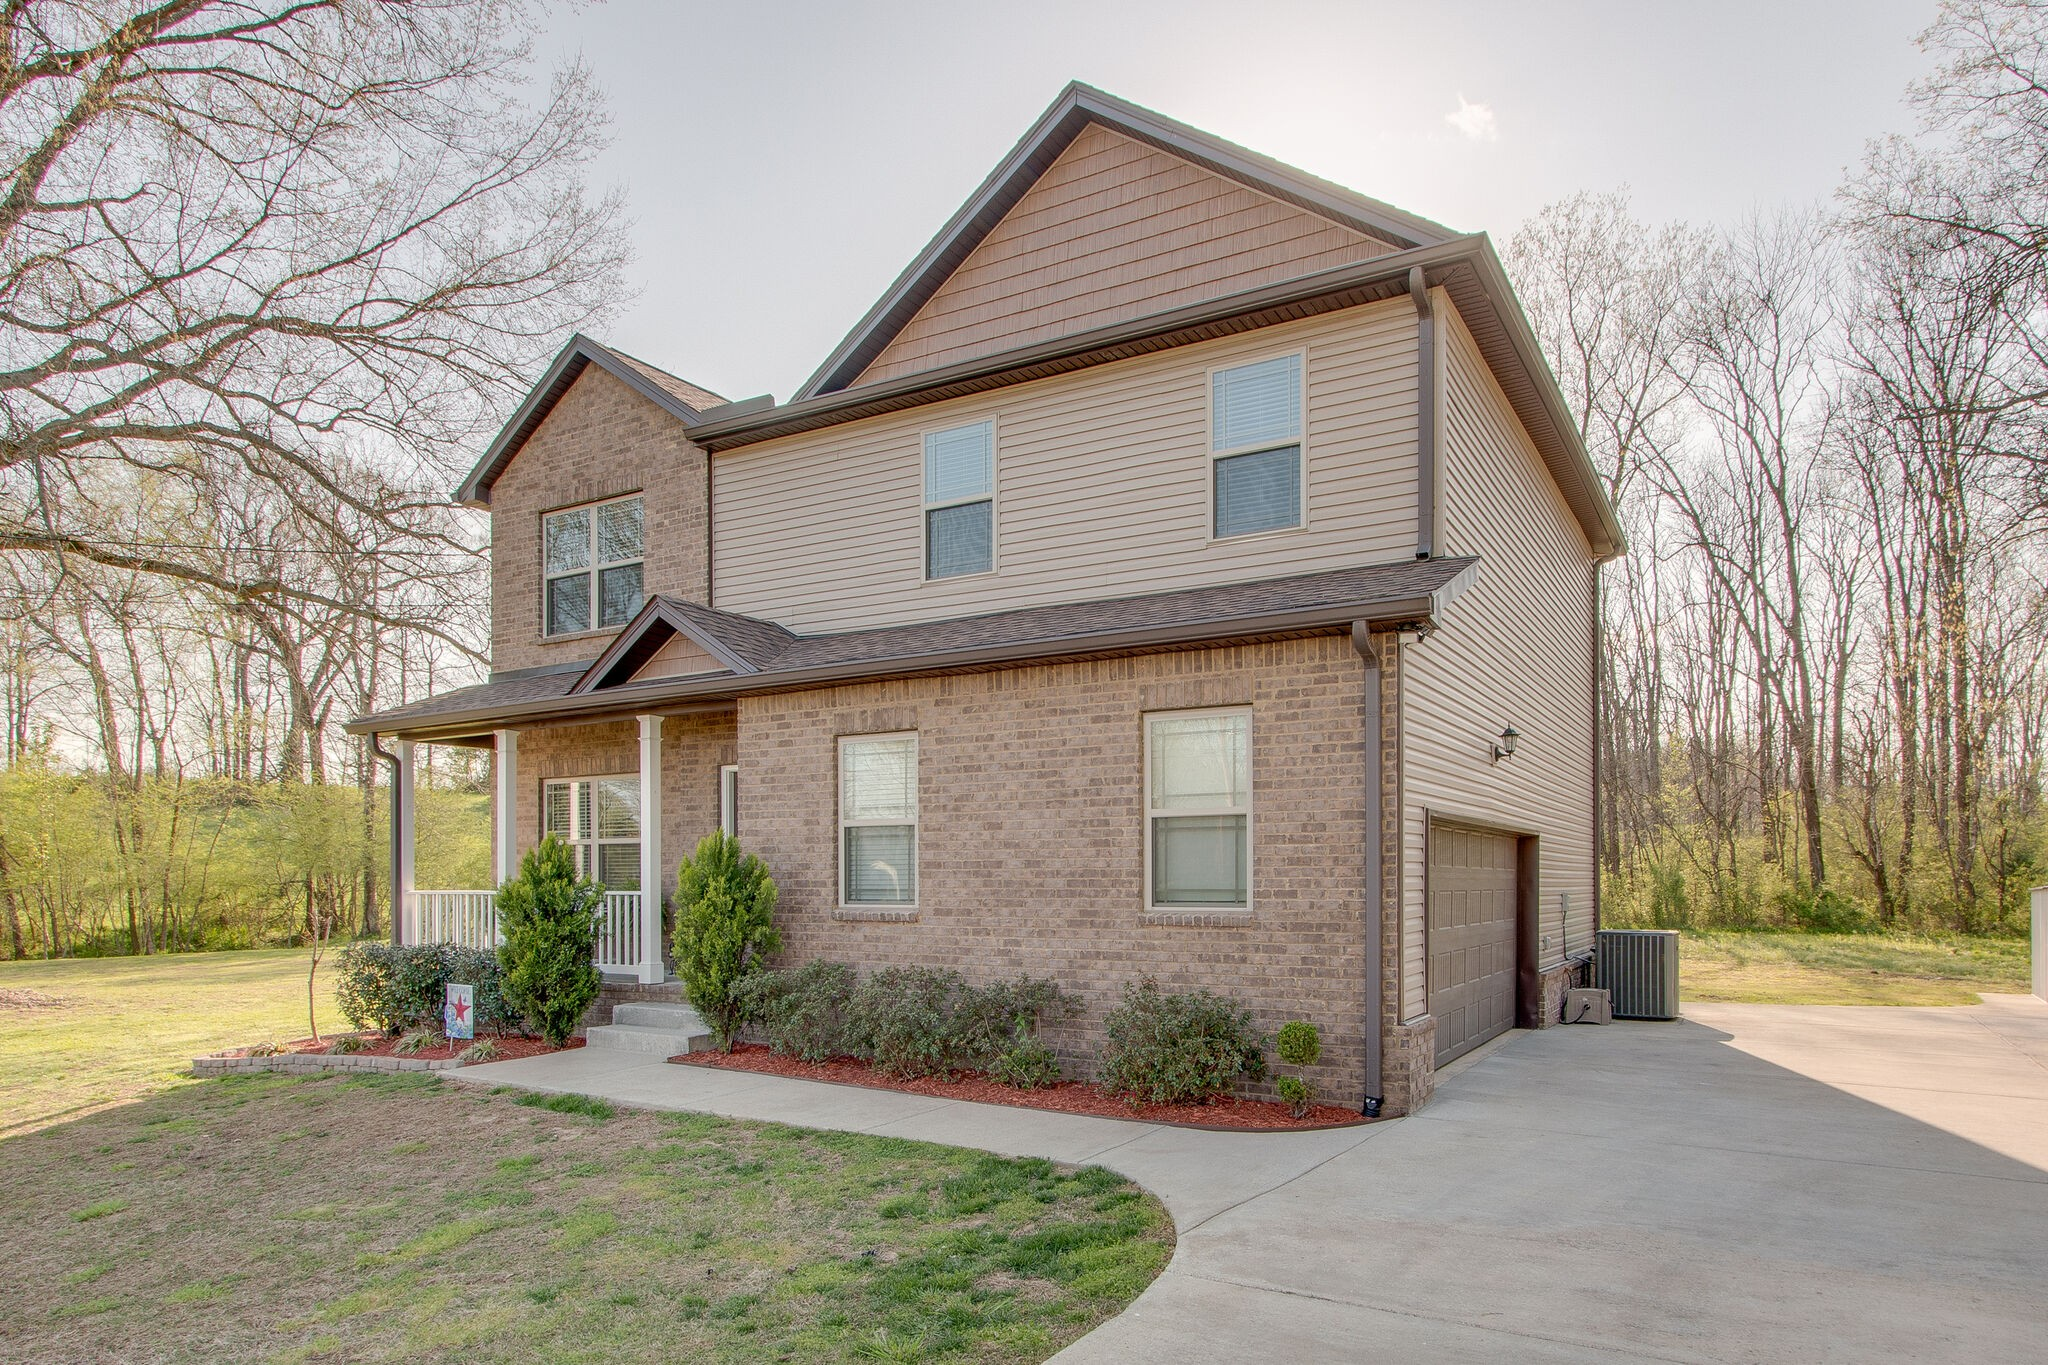 2272 Zion Rd Property Photo - Columbia, TN real estate listing